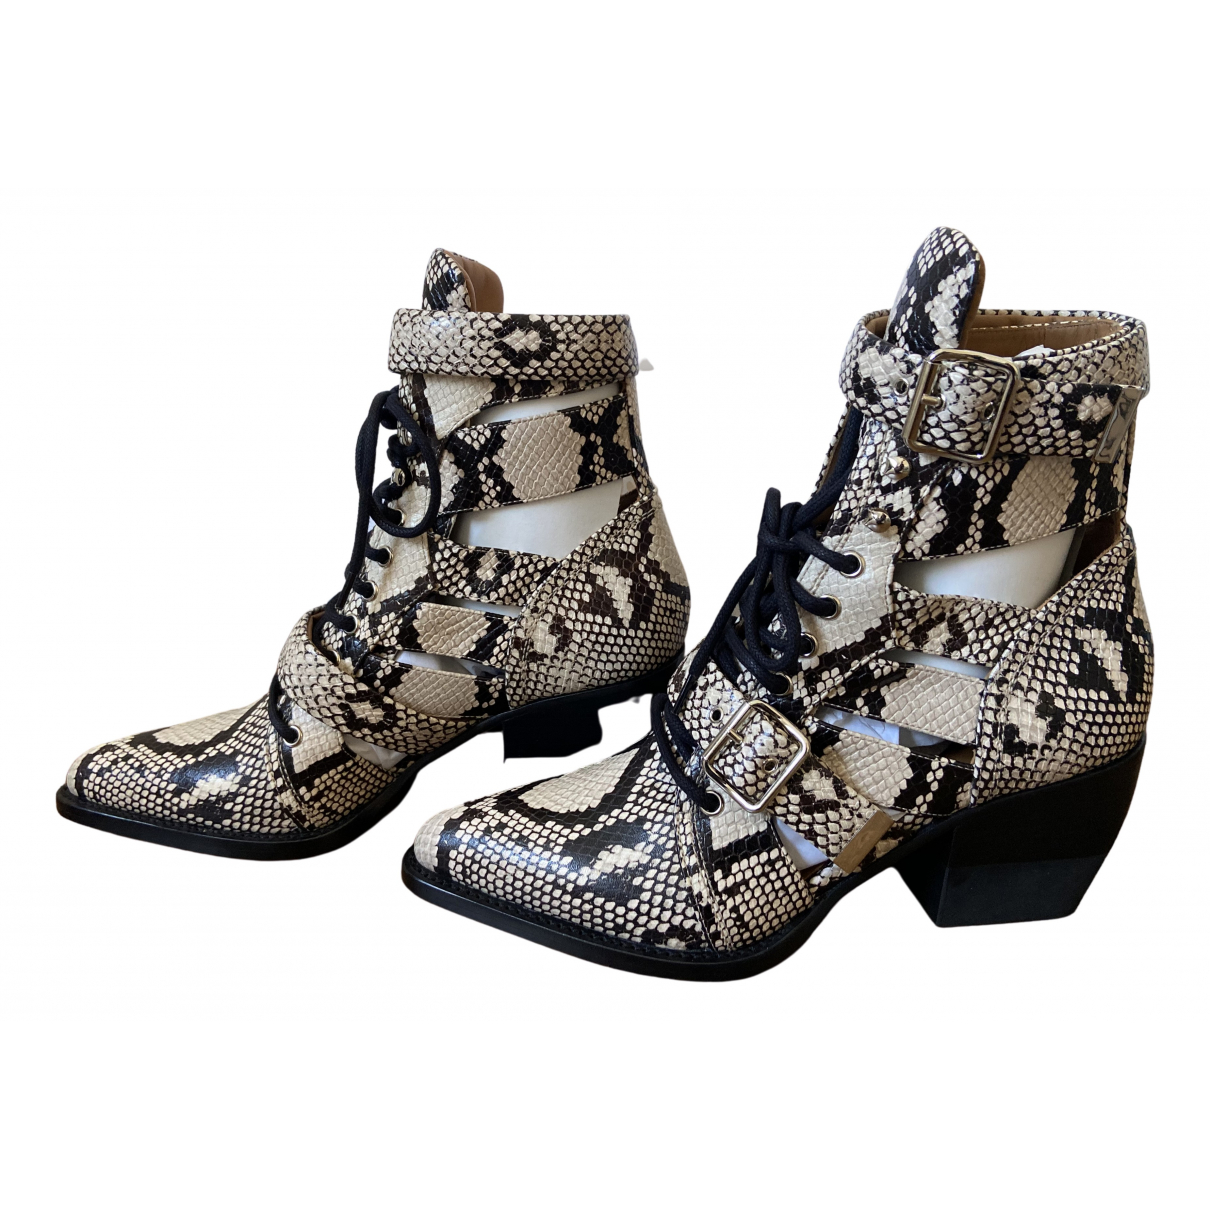 Chloé Rylee Multicolour Leather Ankle boots for Women 40.5 EU